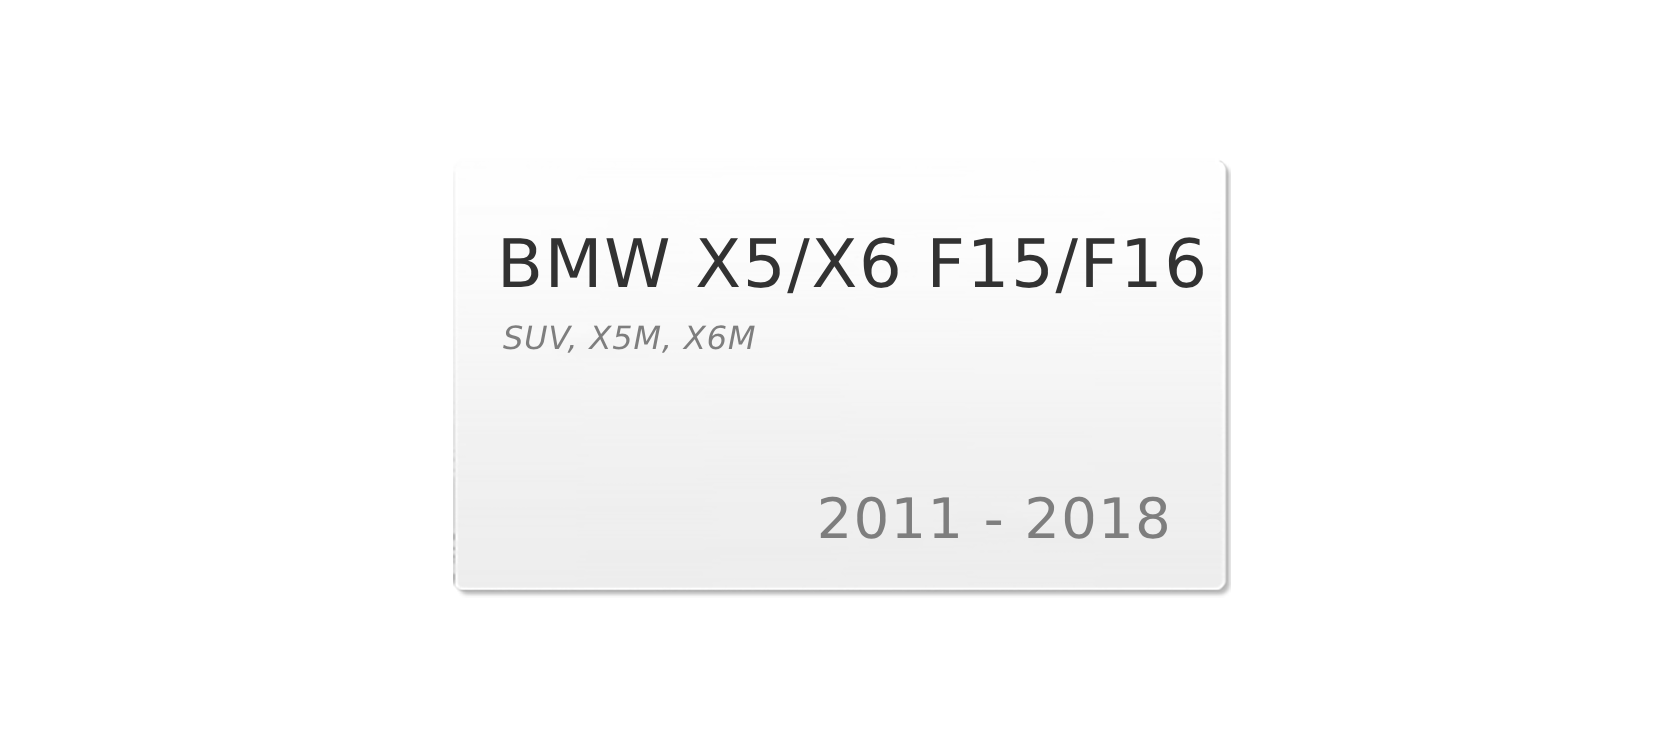 BMW X5 F15 (2013-2018) | Headlight lens plastic covers